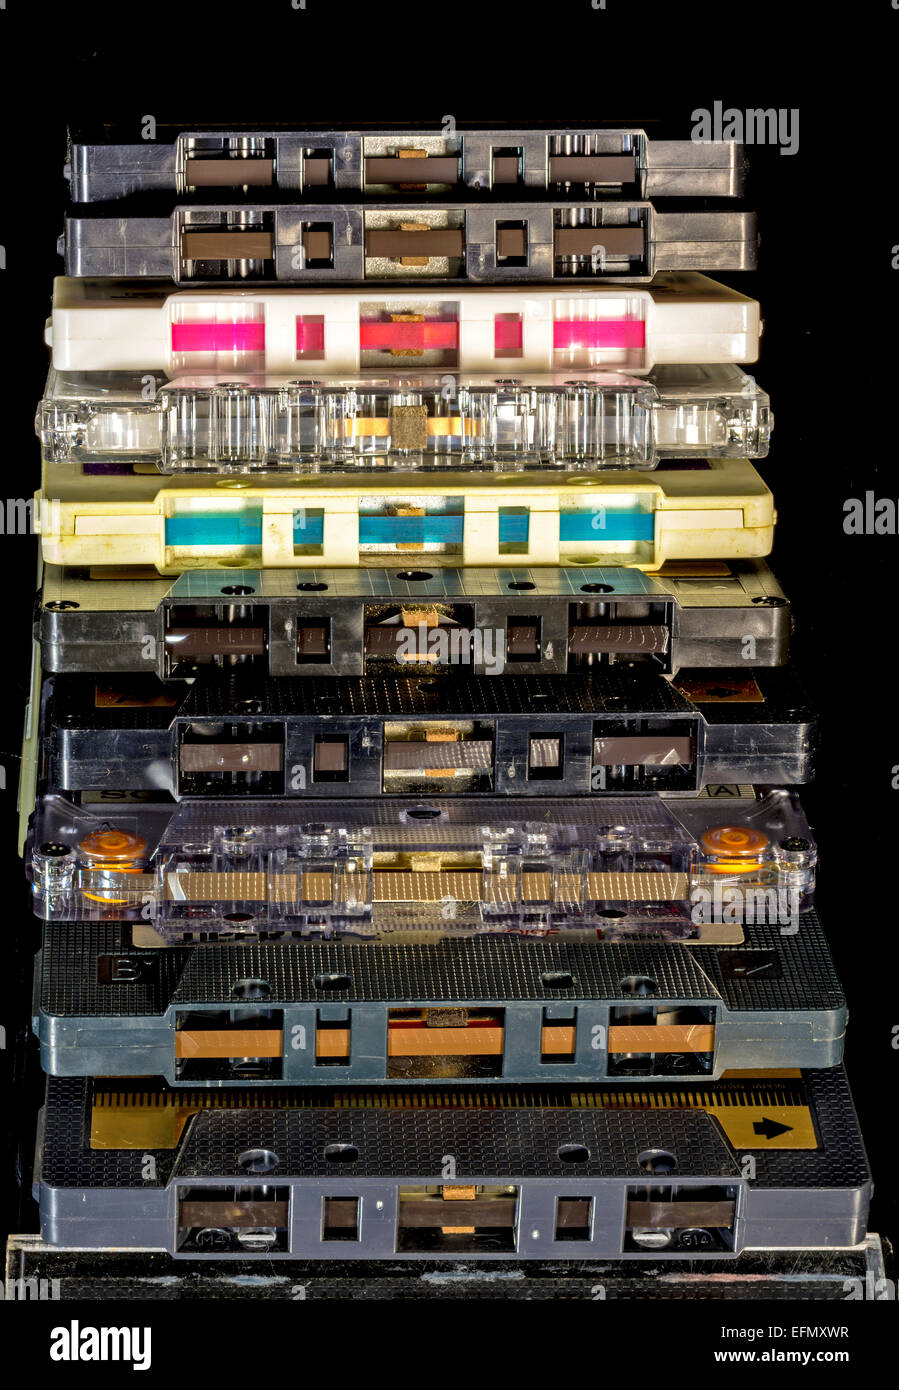 Stack of cassette tapes with ends exposed - Stock Image